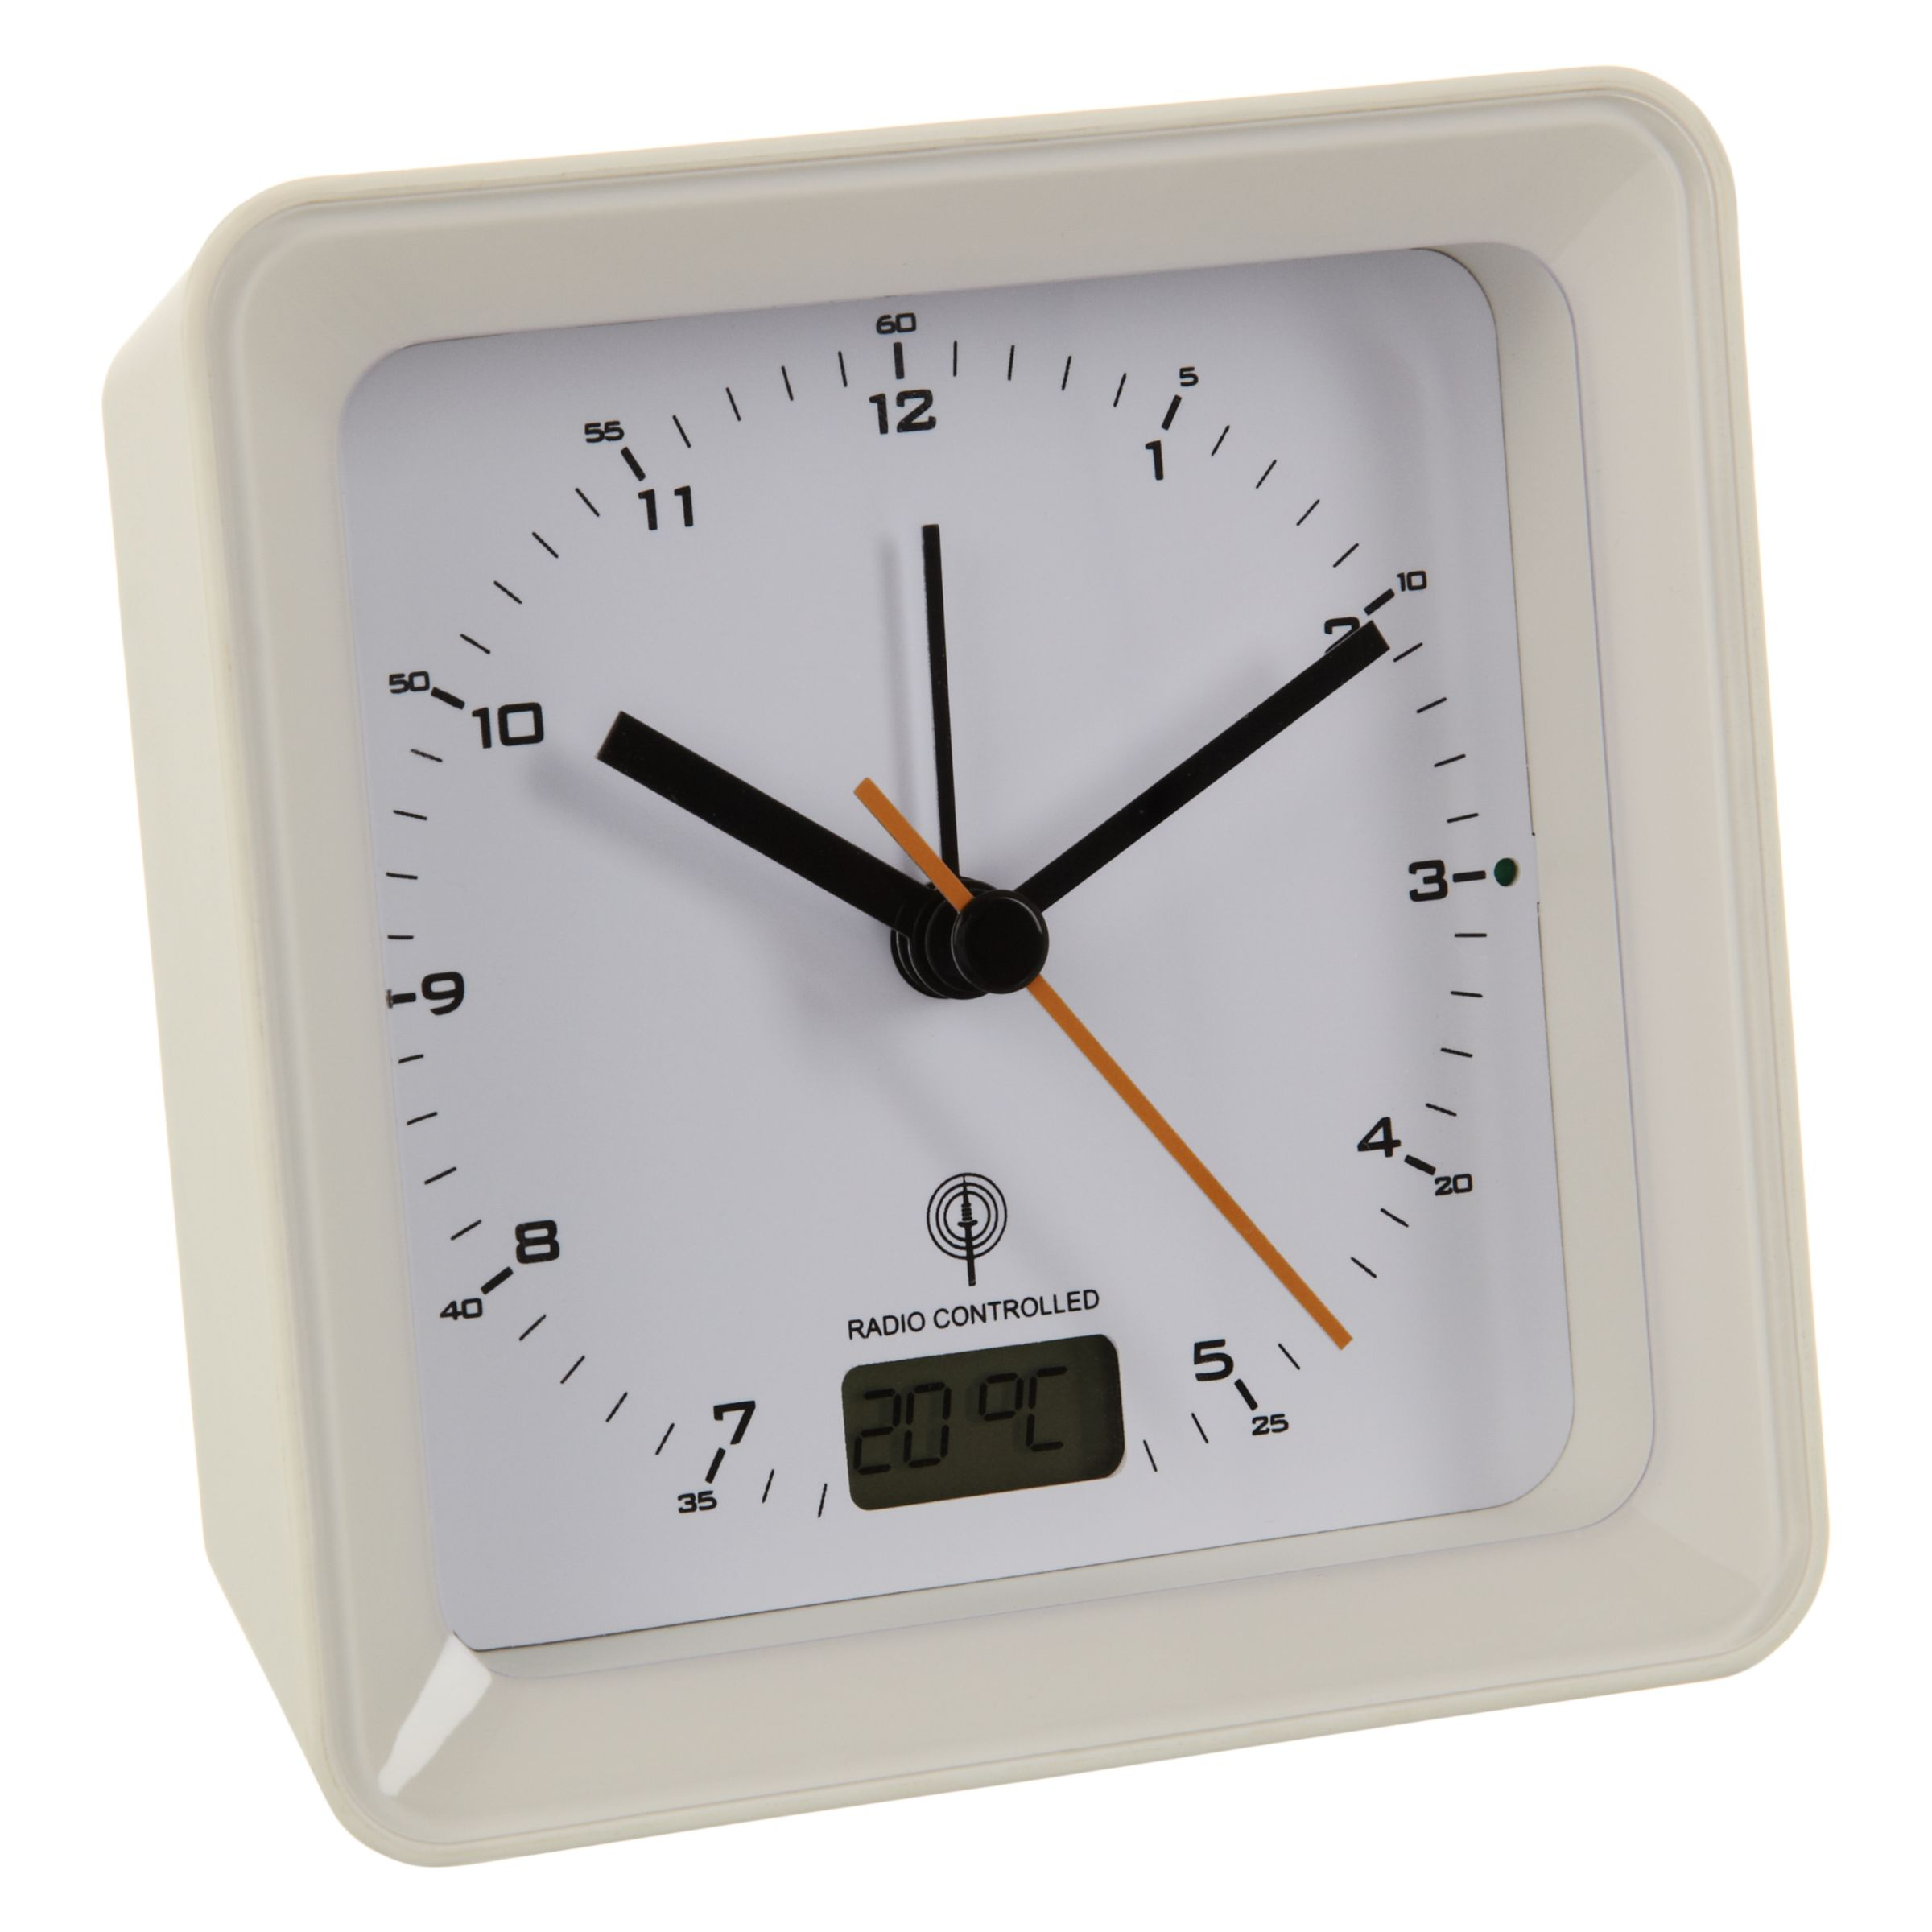 Acctim Radio Controlled Square Alarm Clock White